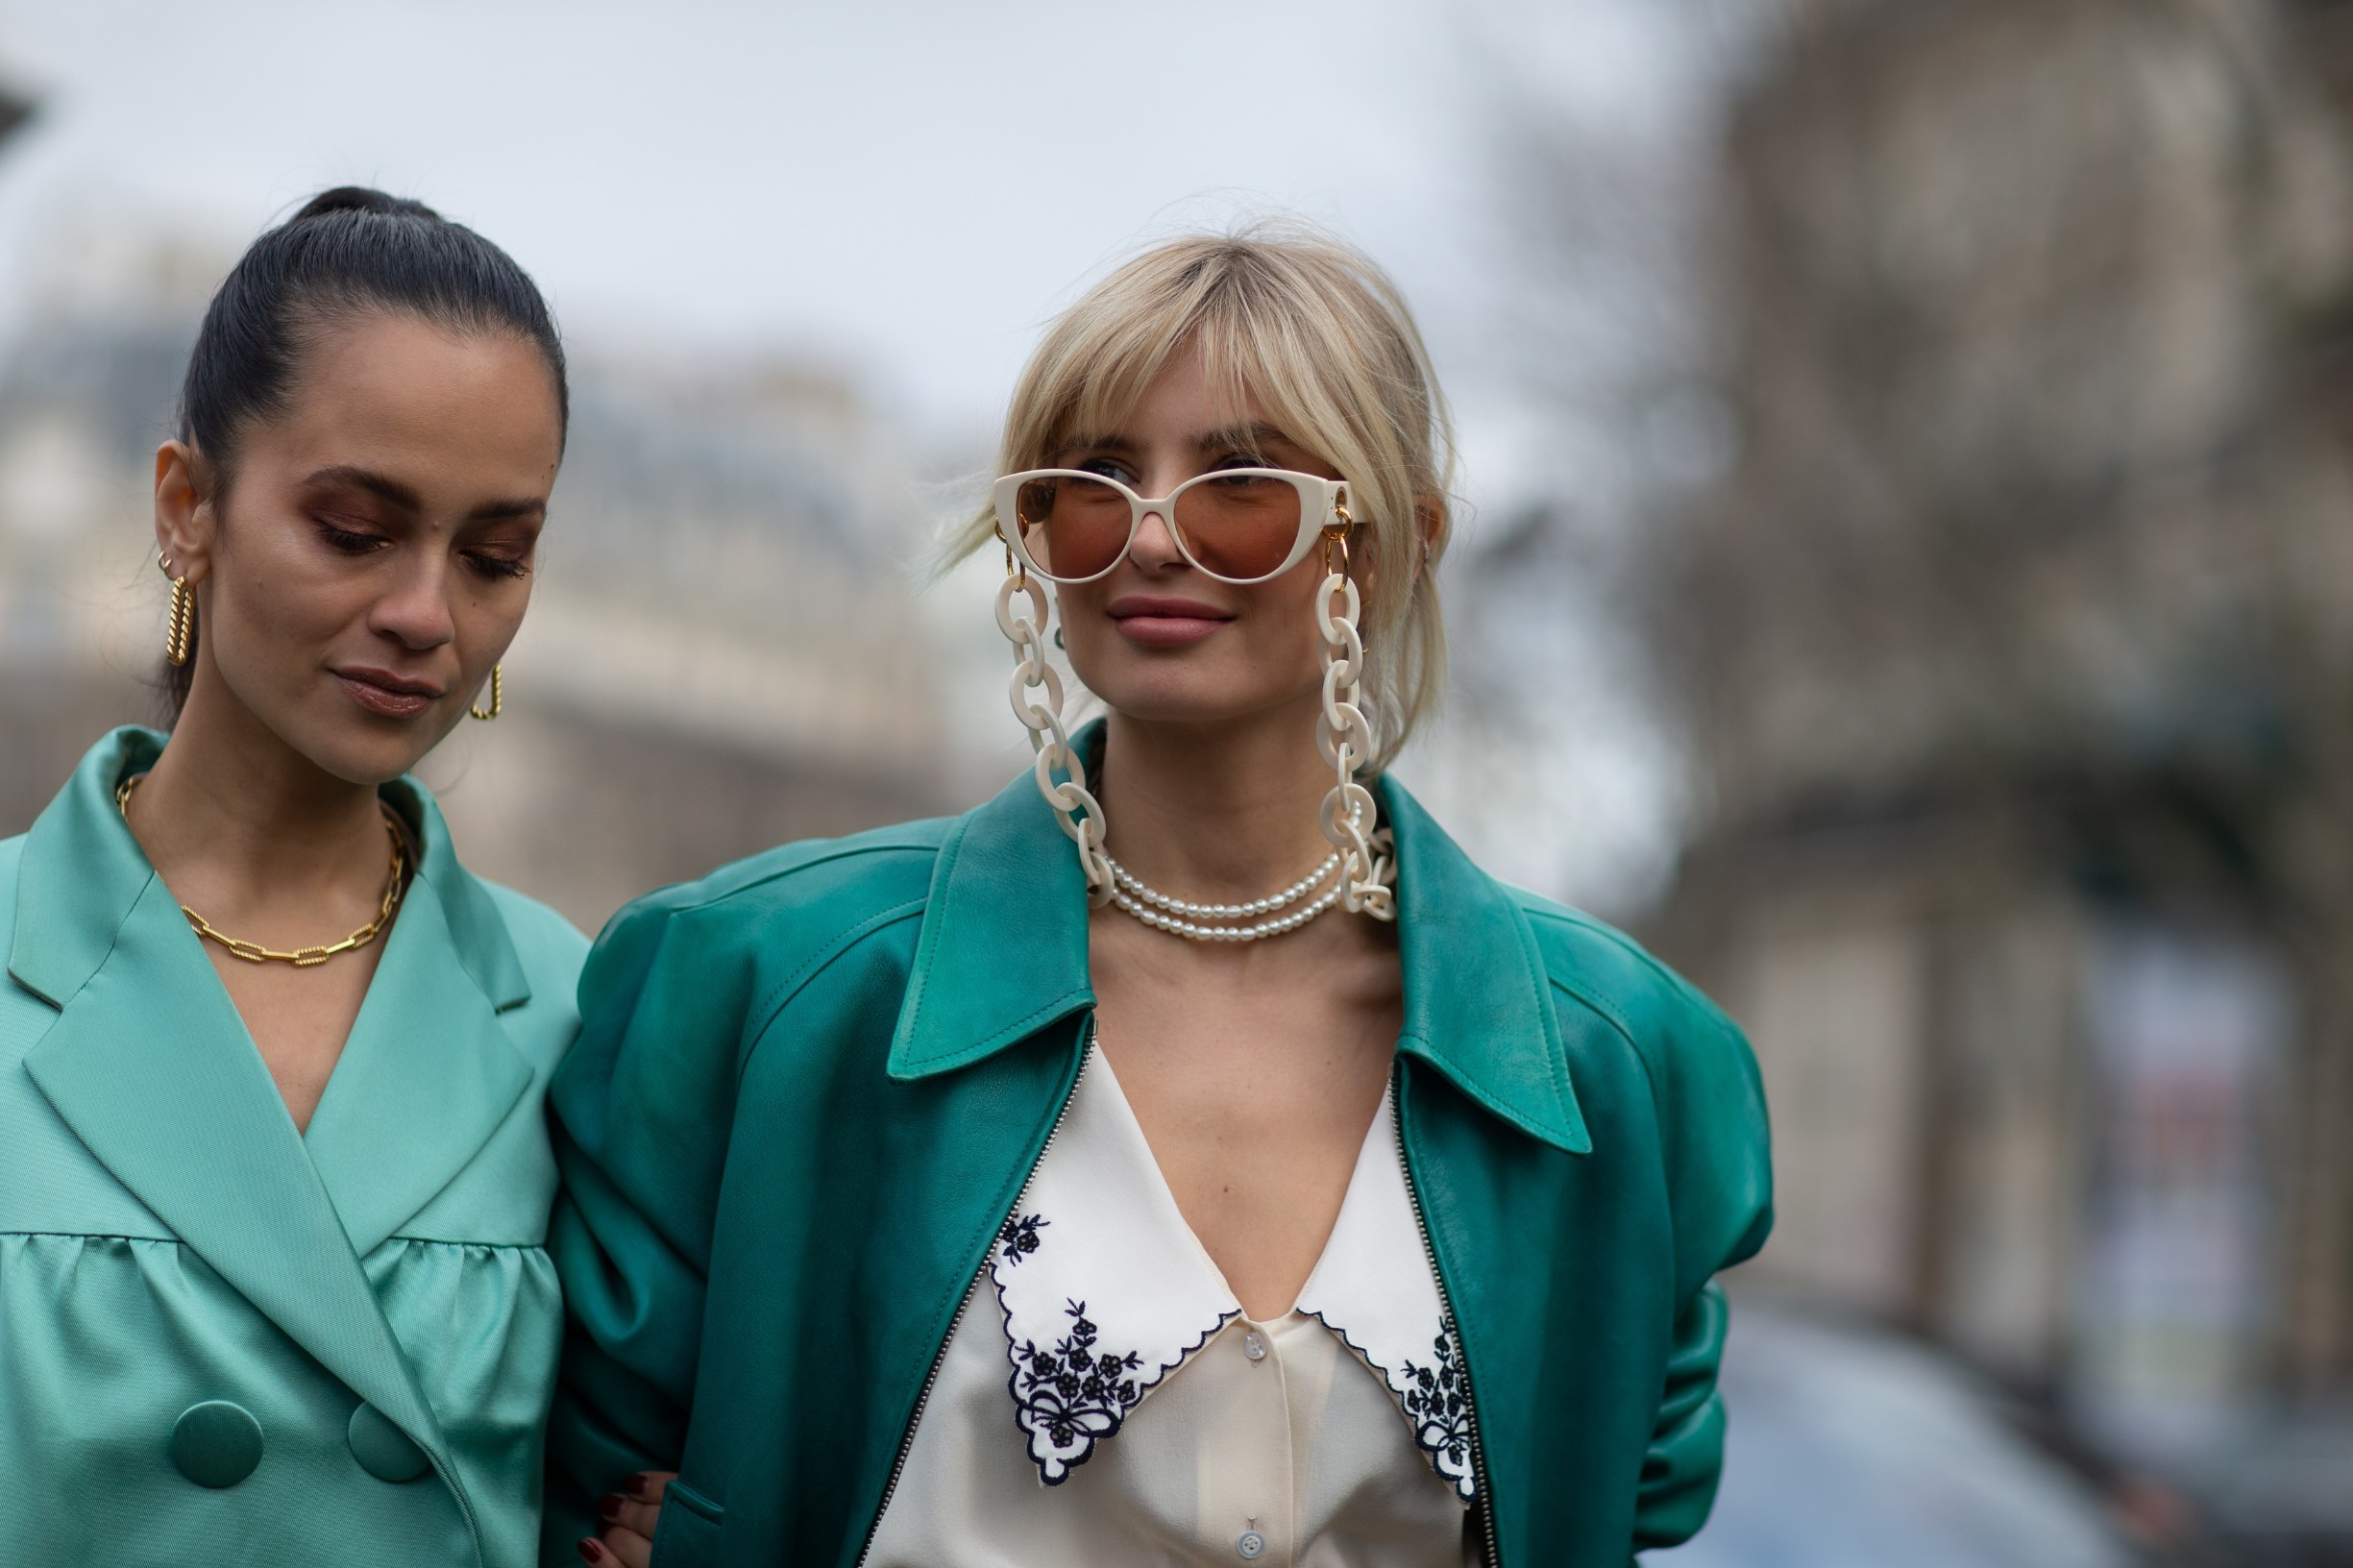 Street Style Street Style, Fall Winter 2020, Paris Fashion Week, France - 03 Mar 2020,Image: 506761133, License: Rights-managed, Restrictions: , Model Release: no, Credit line: Photoeventshd / Shutterstock Editorial / Profimedia